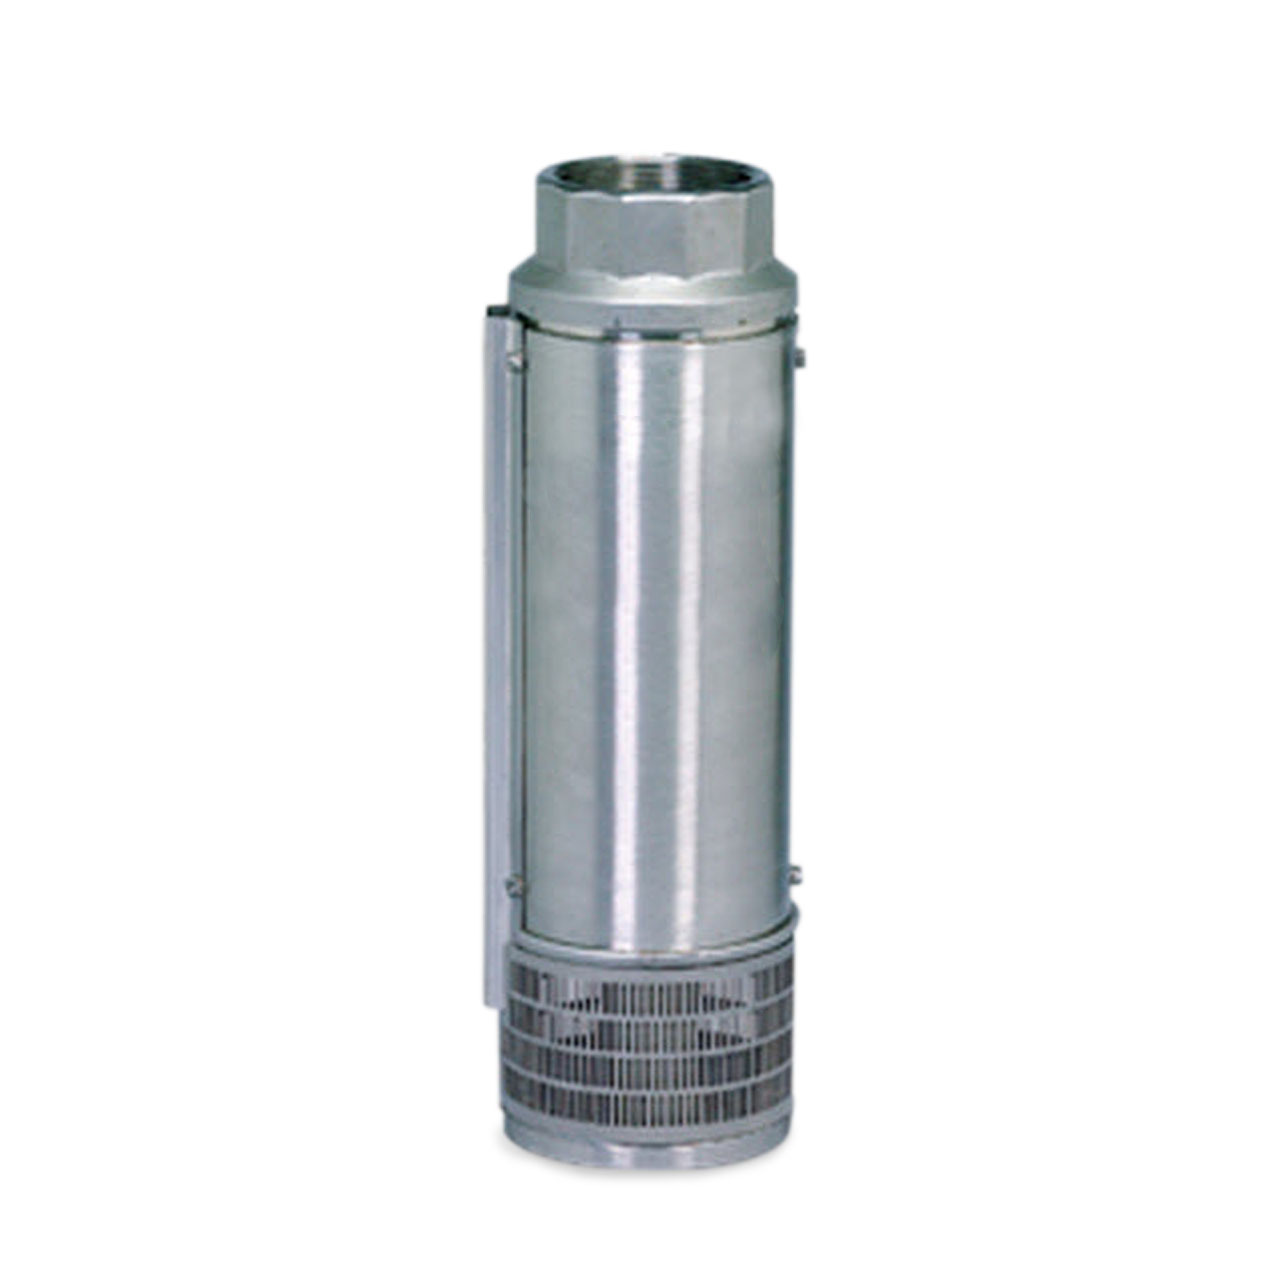 hight resolution of franklin electric franklin electric 4400 6 high capacity 100fa15s6 pe submersible well pump end only 100 gpm 15 hp fec94820009